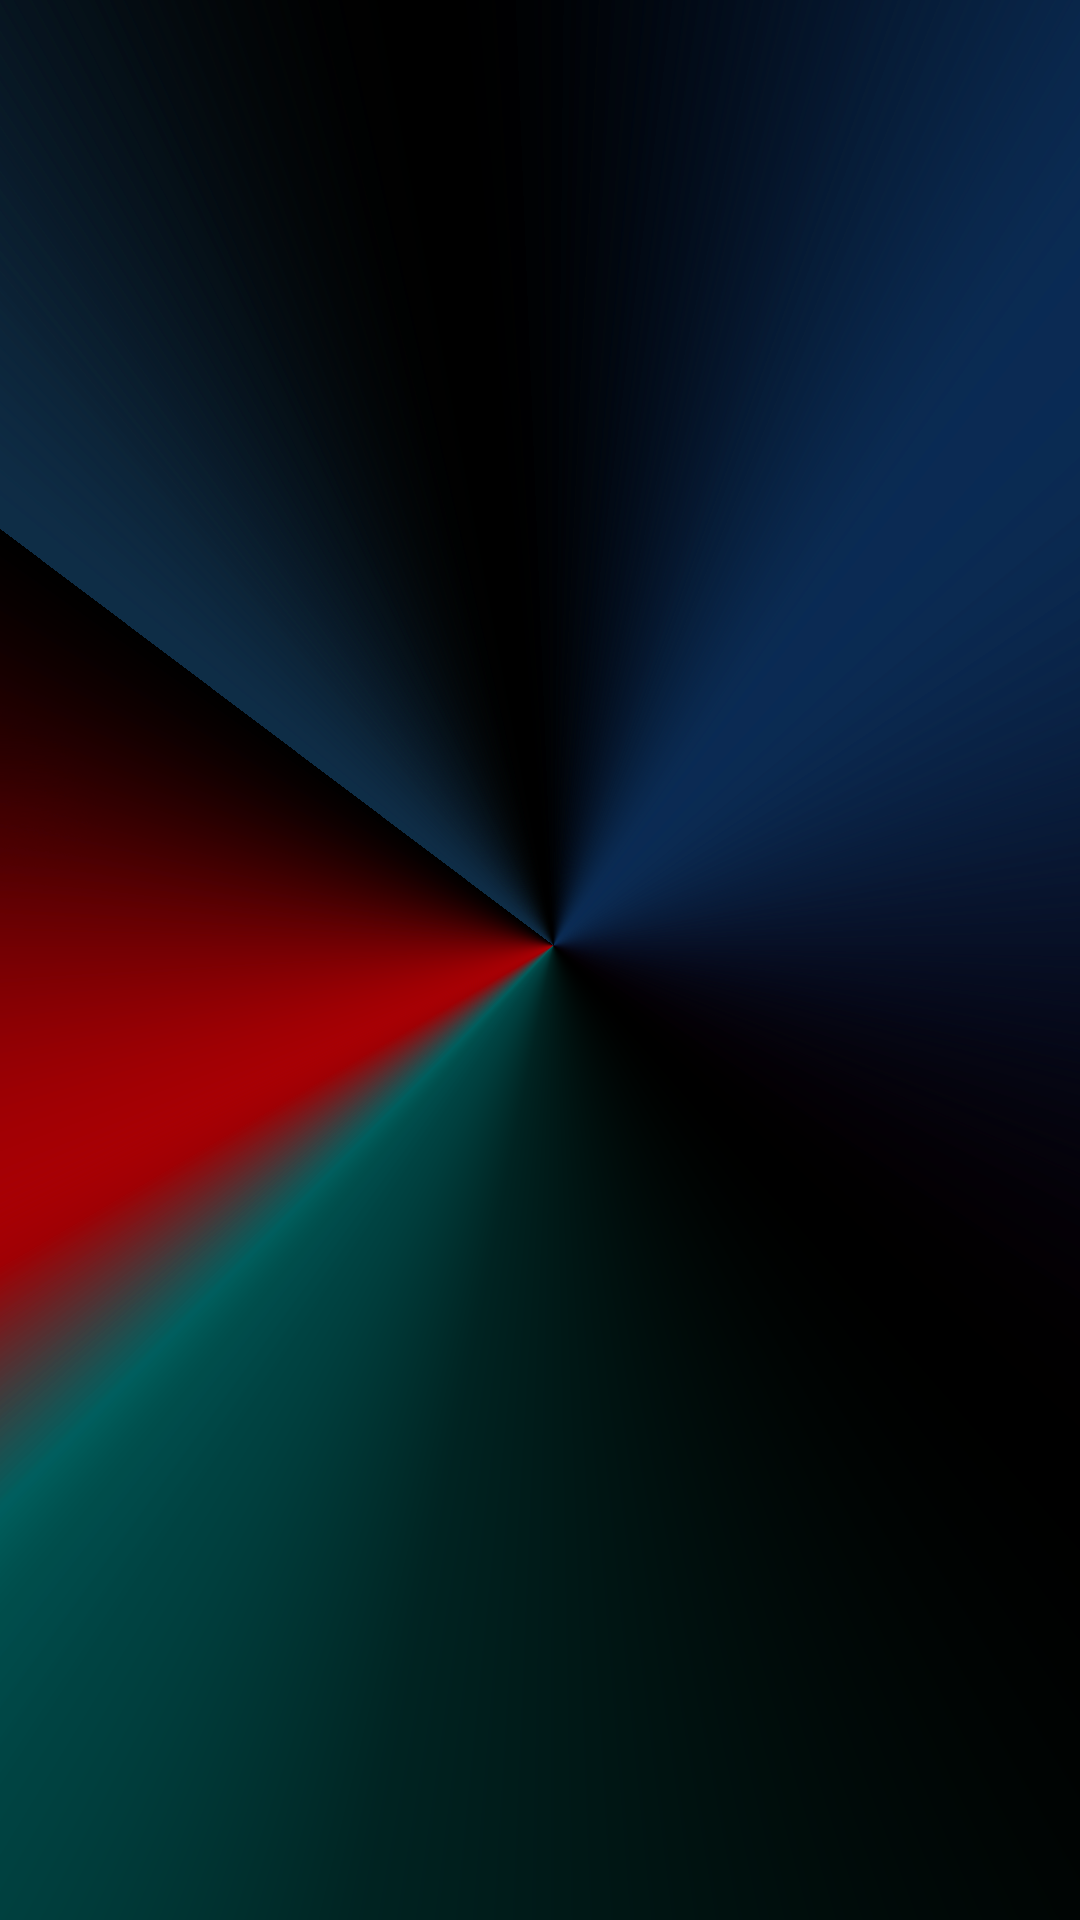 Blue Green Red Prints Abstract Wallpaper Backgrounds Phone Wallpapers Abstract